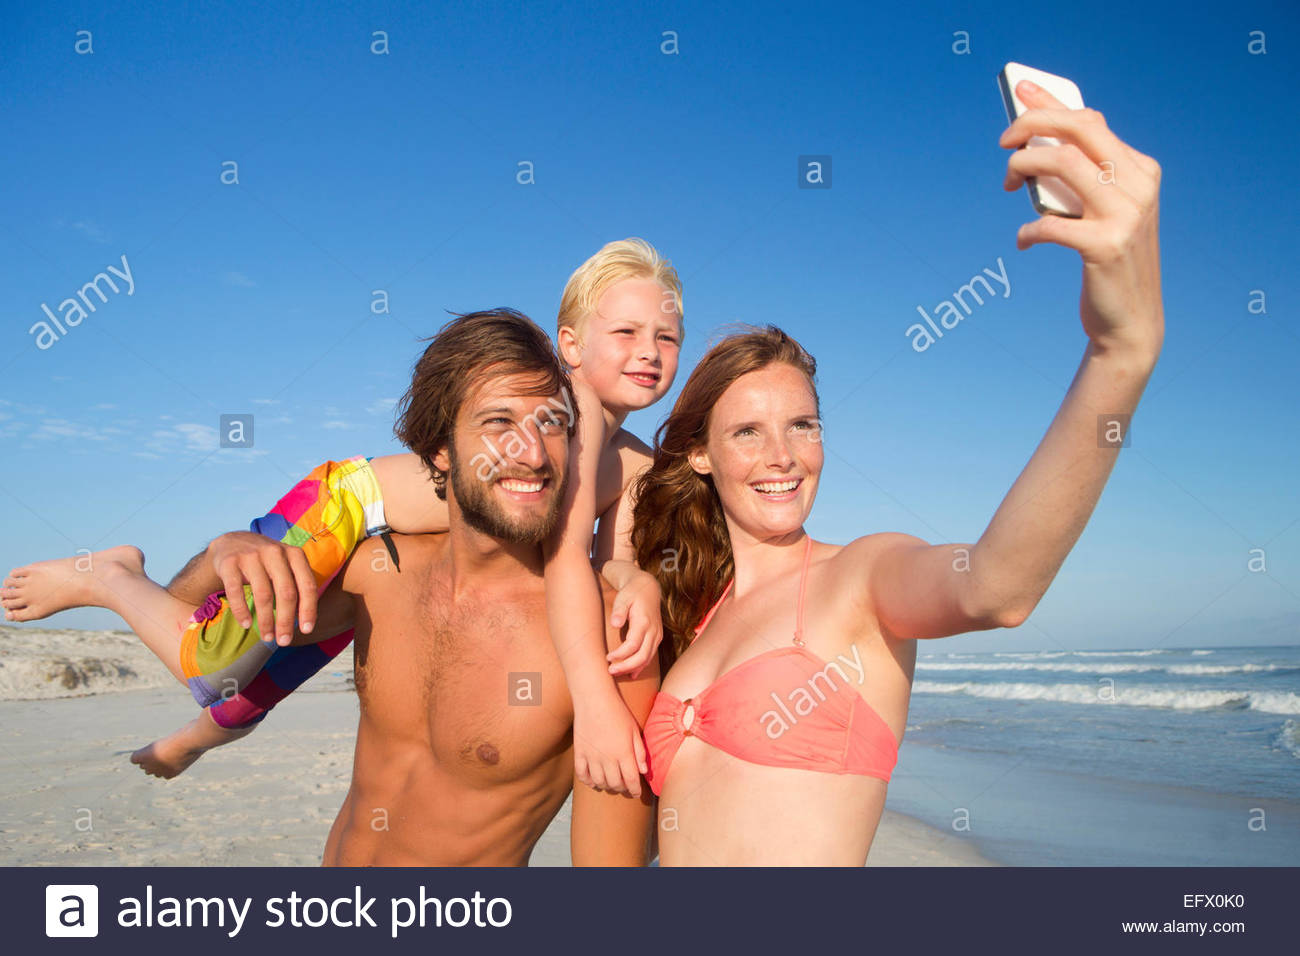 Portrait of happy couple with son on shoulder, taking selfie on sunny beach - Stock Image